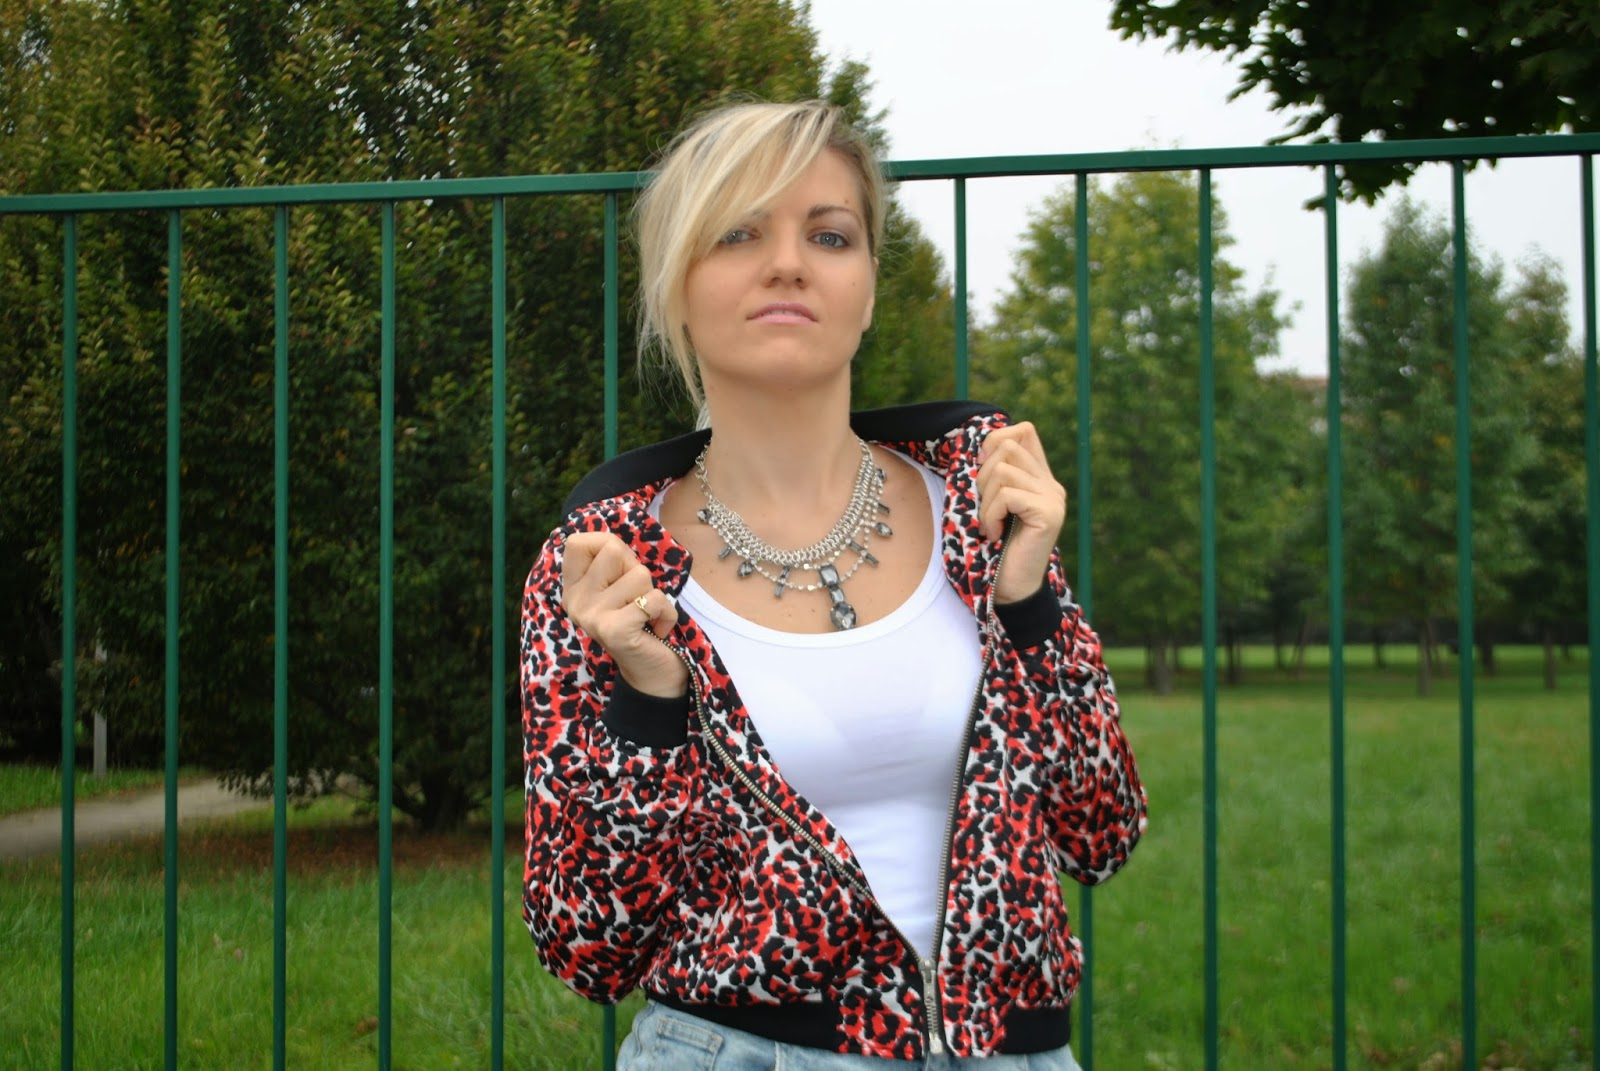 pencil skirt outfit denim pencil skirt denim destroyed pencil skirt how to wear pencil skirt how to wear denim destroyed pencil skirt outfit gonna in denim destroyed outfit tubino in denim outfit bomber outfit decollete nere outfit collana majique majique london necklace how to wear denim destroyed skirt denim skirt gonna in jeans destroyed outfit autunnali outfit ottobre 2014 outfit mariafelicia magno mariafelicia magno fashion blogger colorblock by felym outfit di mariafelicia magno fashion blogger di colorblock by felym decolletè nere francesco biasia gestione del product recall abbinamenti gonna jeans abbinamenti gonna in denim come abbinare la gonna in denim abbinamenti bomber come abbinare il bomber come indossare il bomber bomber a stampa bomer autunno inverno 2014-2015 fashion blogger bionde fashion blogger milano fashion blogger bergamo acconciature coda how to wear bomber how to wear denim destroyed skirt lookbook ottobre 2014 streetstyle ottobre 2014